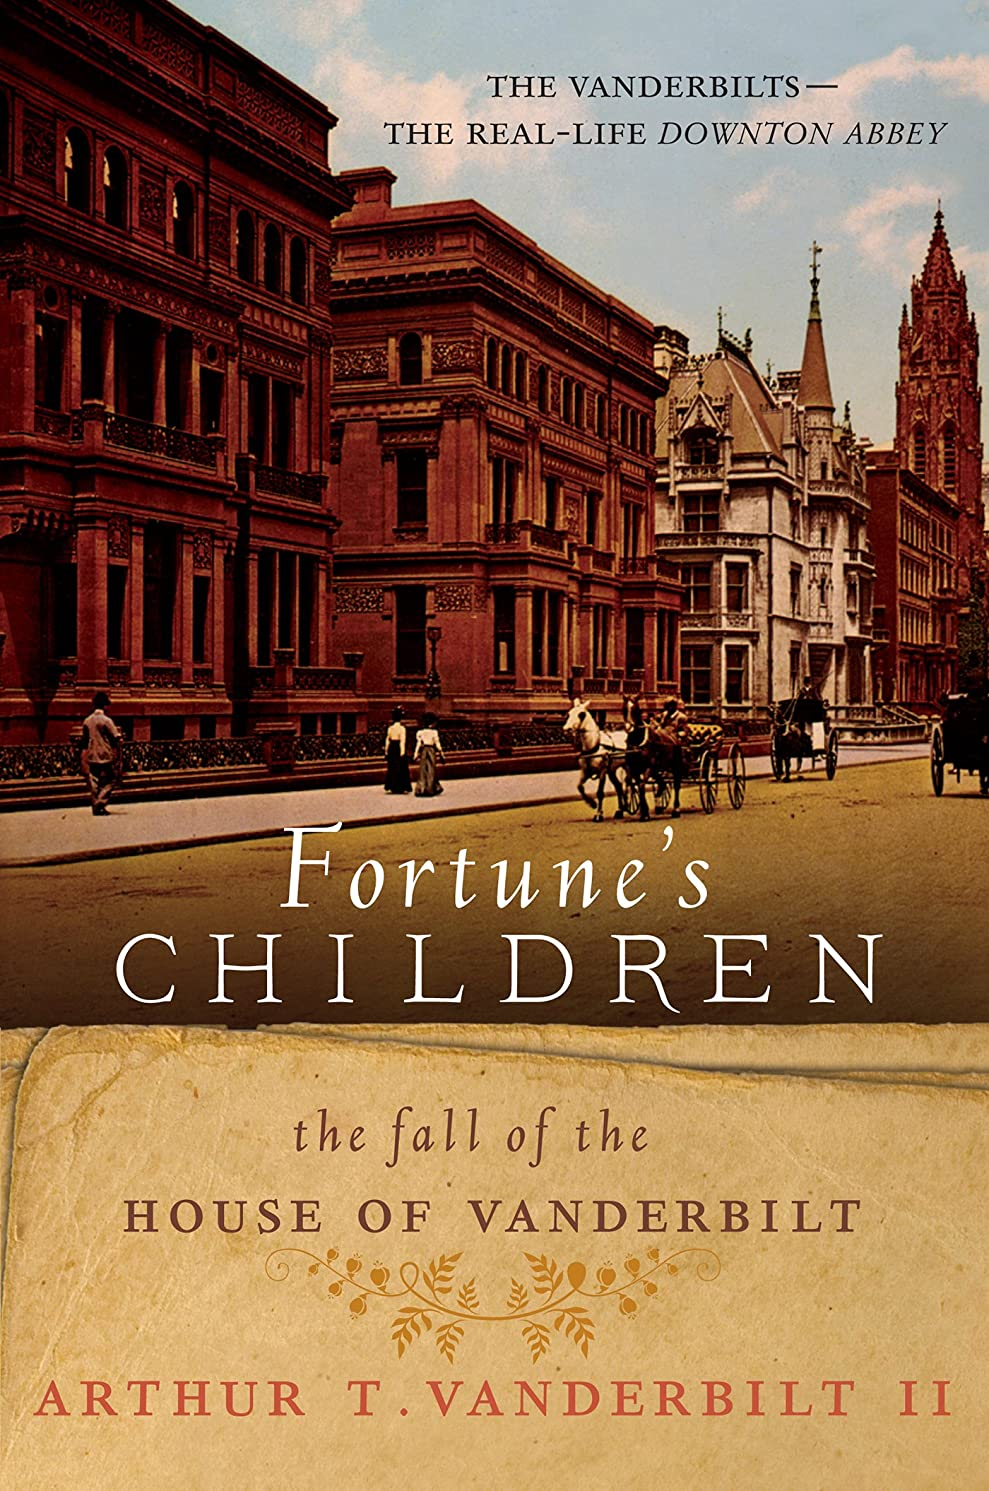 縫う導出寸前Fortune's Children: The Fall of the House of Vanderbilt (English Edition)